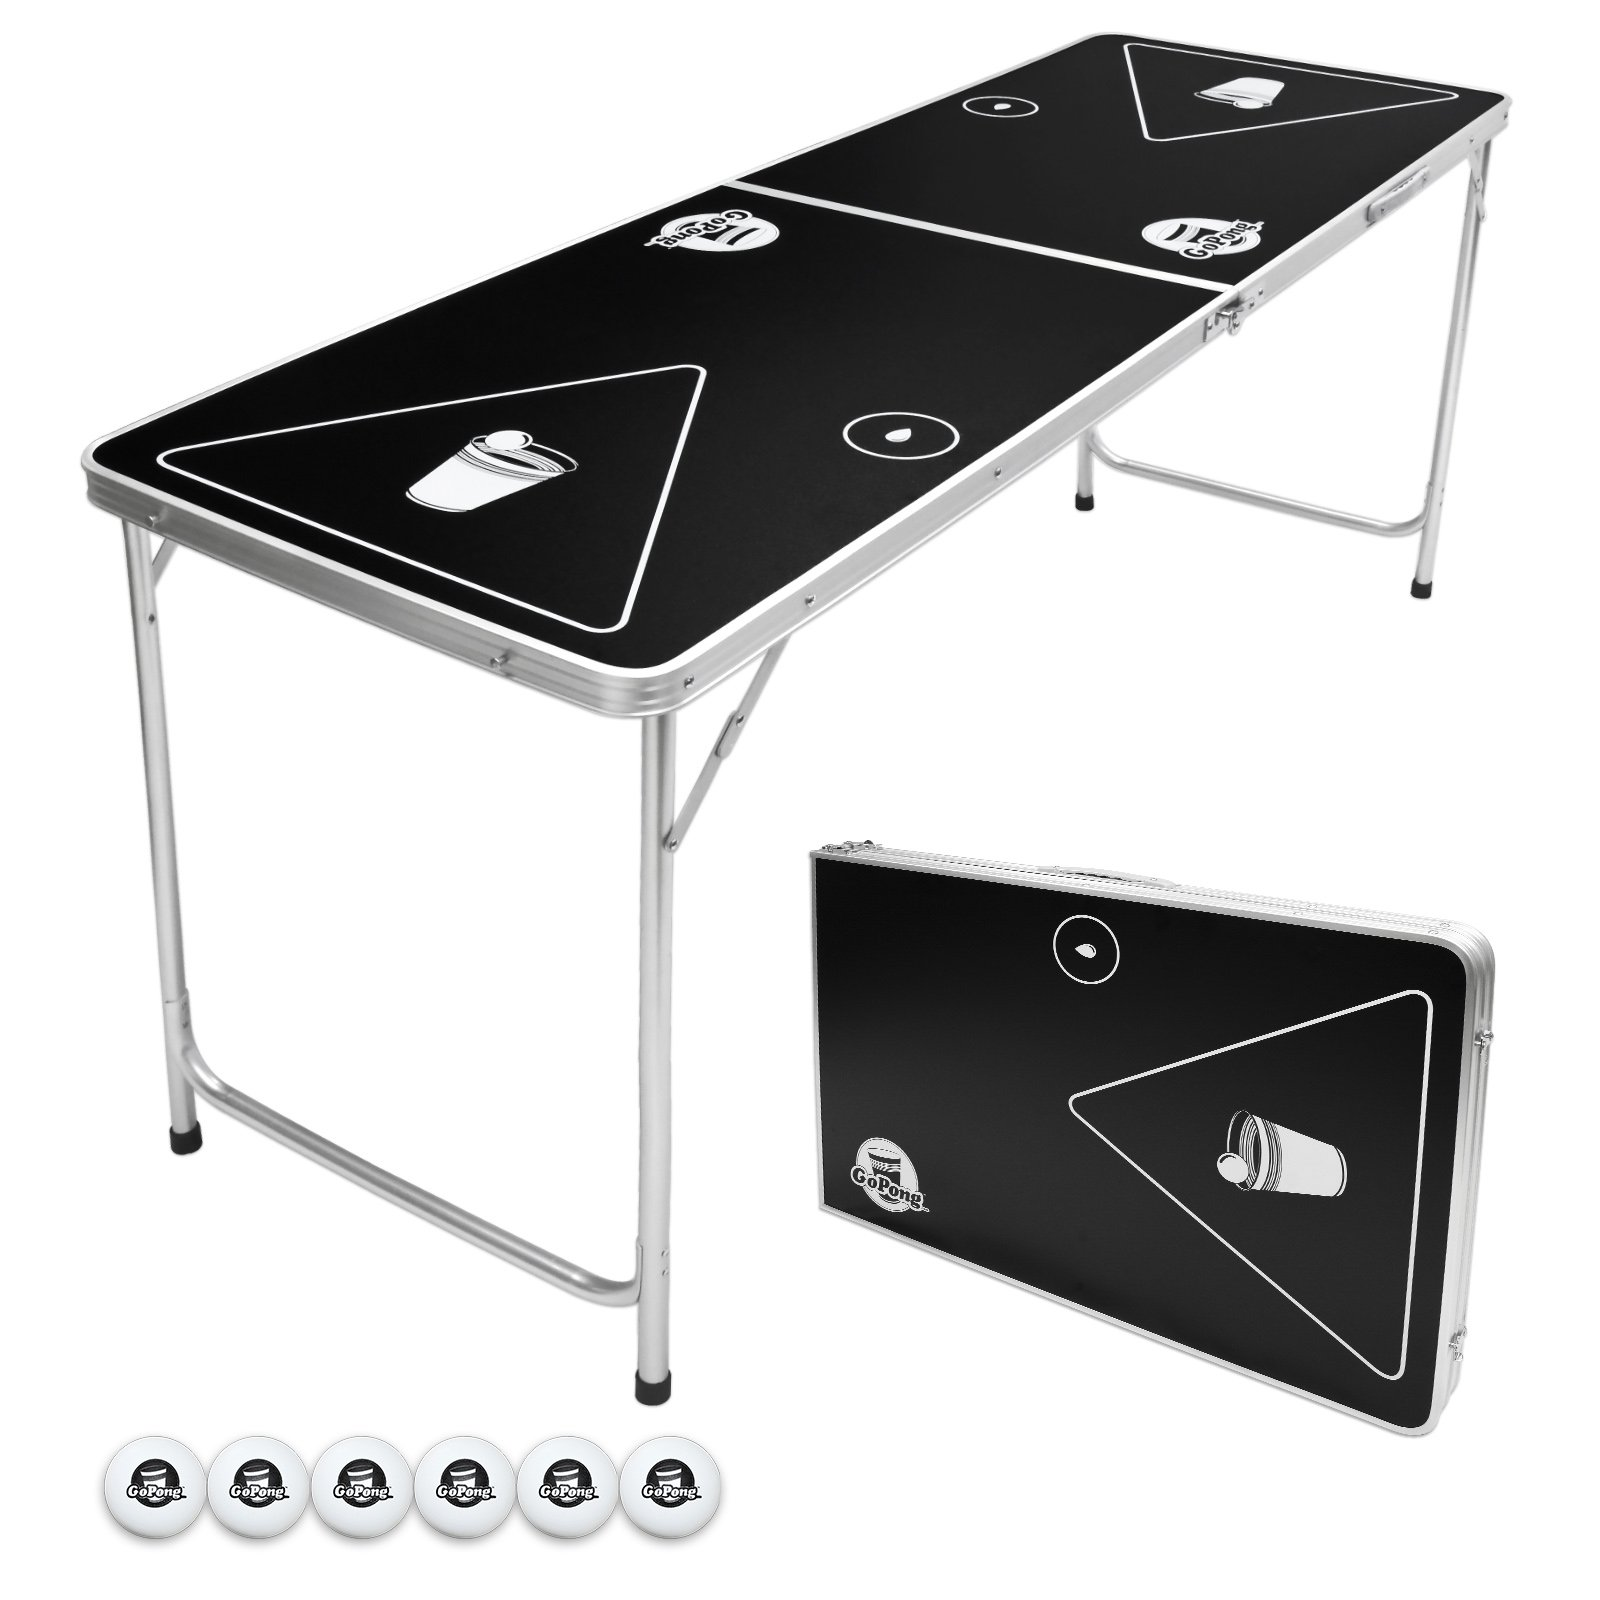 GoPong 6-Foot Portable Folding Beer Pong / Flip Cup Table (6 balls included) by GoPong